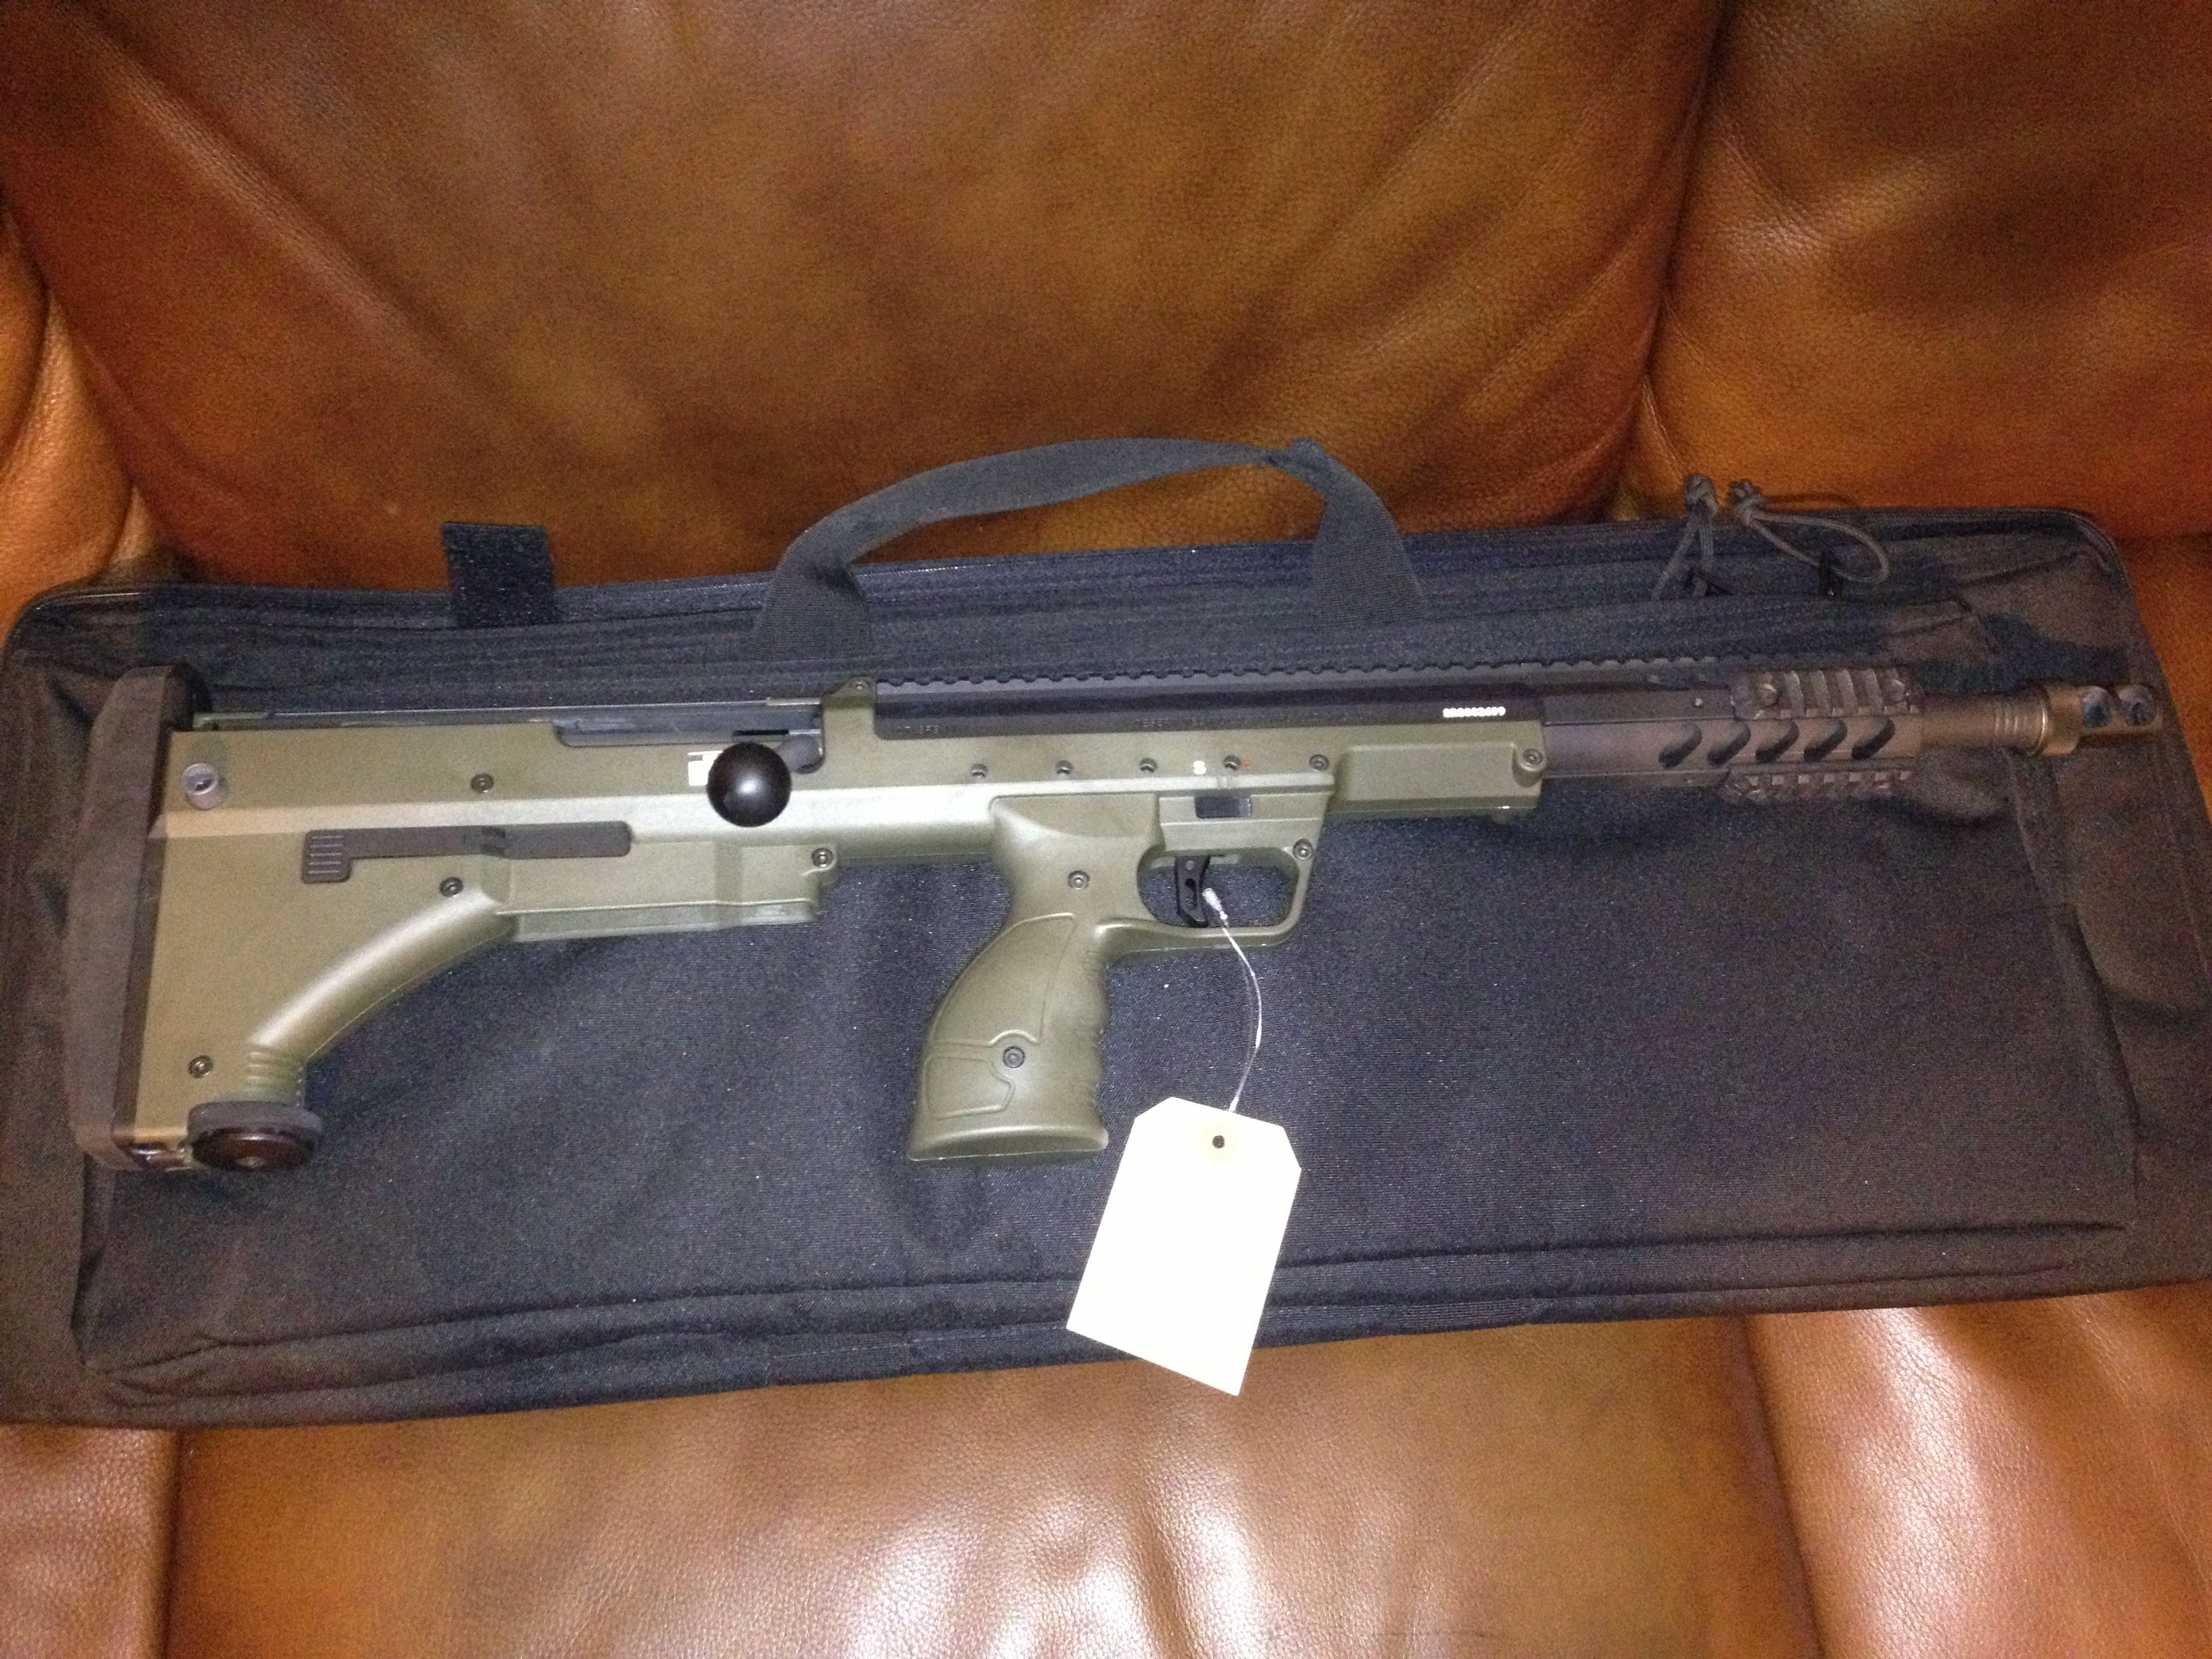 Gun review desert tactical arms stealth recon scout dta srs rifle - My Desert Tactical Srs A1 In 338 Lapua Mag Color Is Black Odg